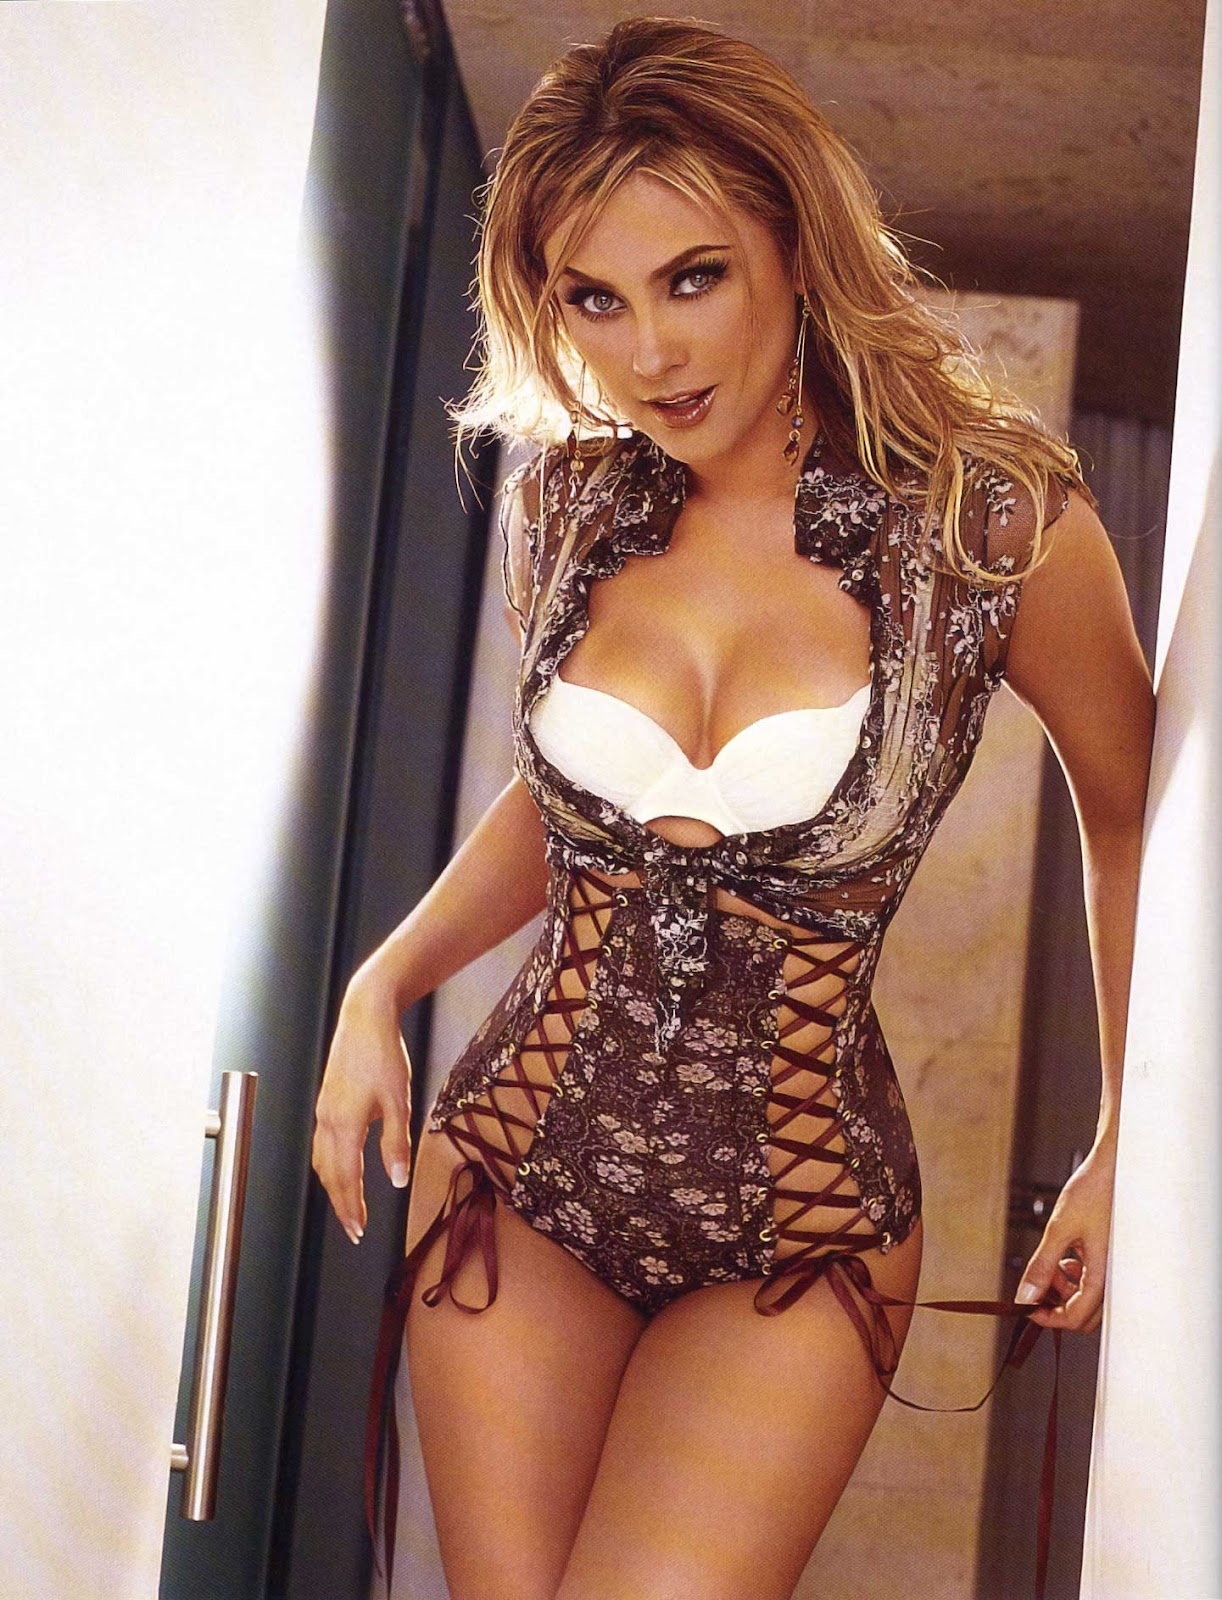 Aracely Arambula is a Mexican actress, singer and model, born in